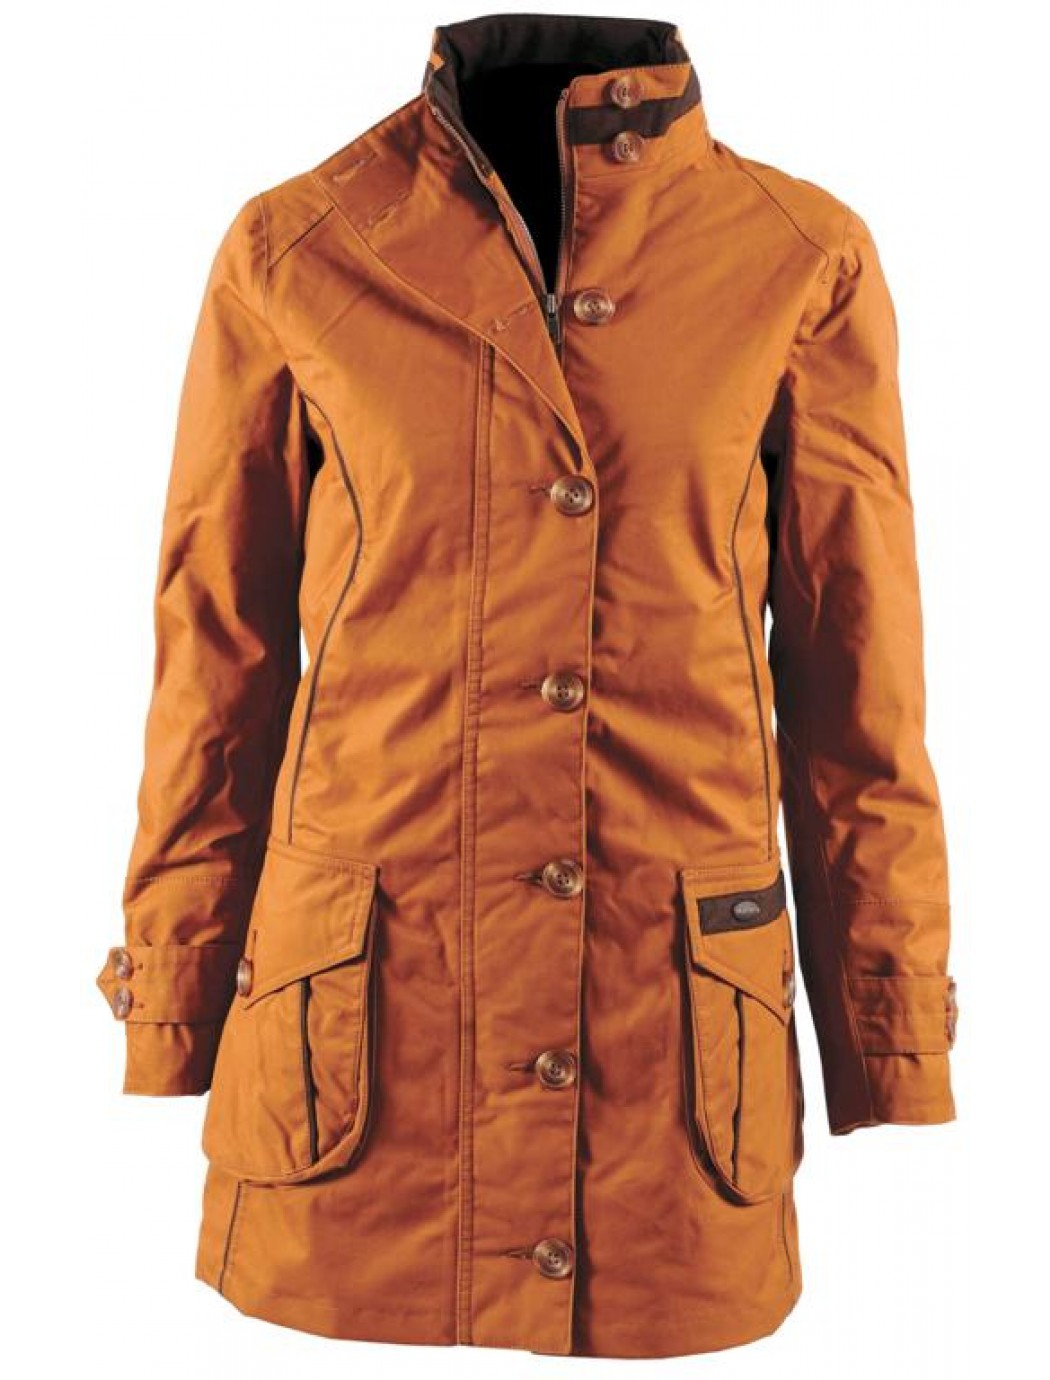 skerrit-jacket-autumn gold large  3